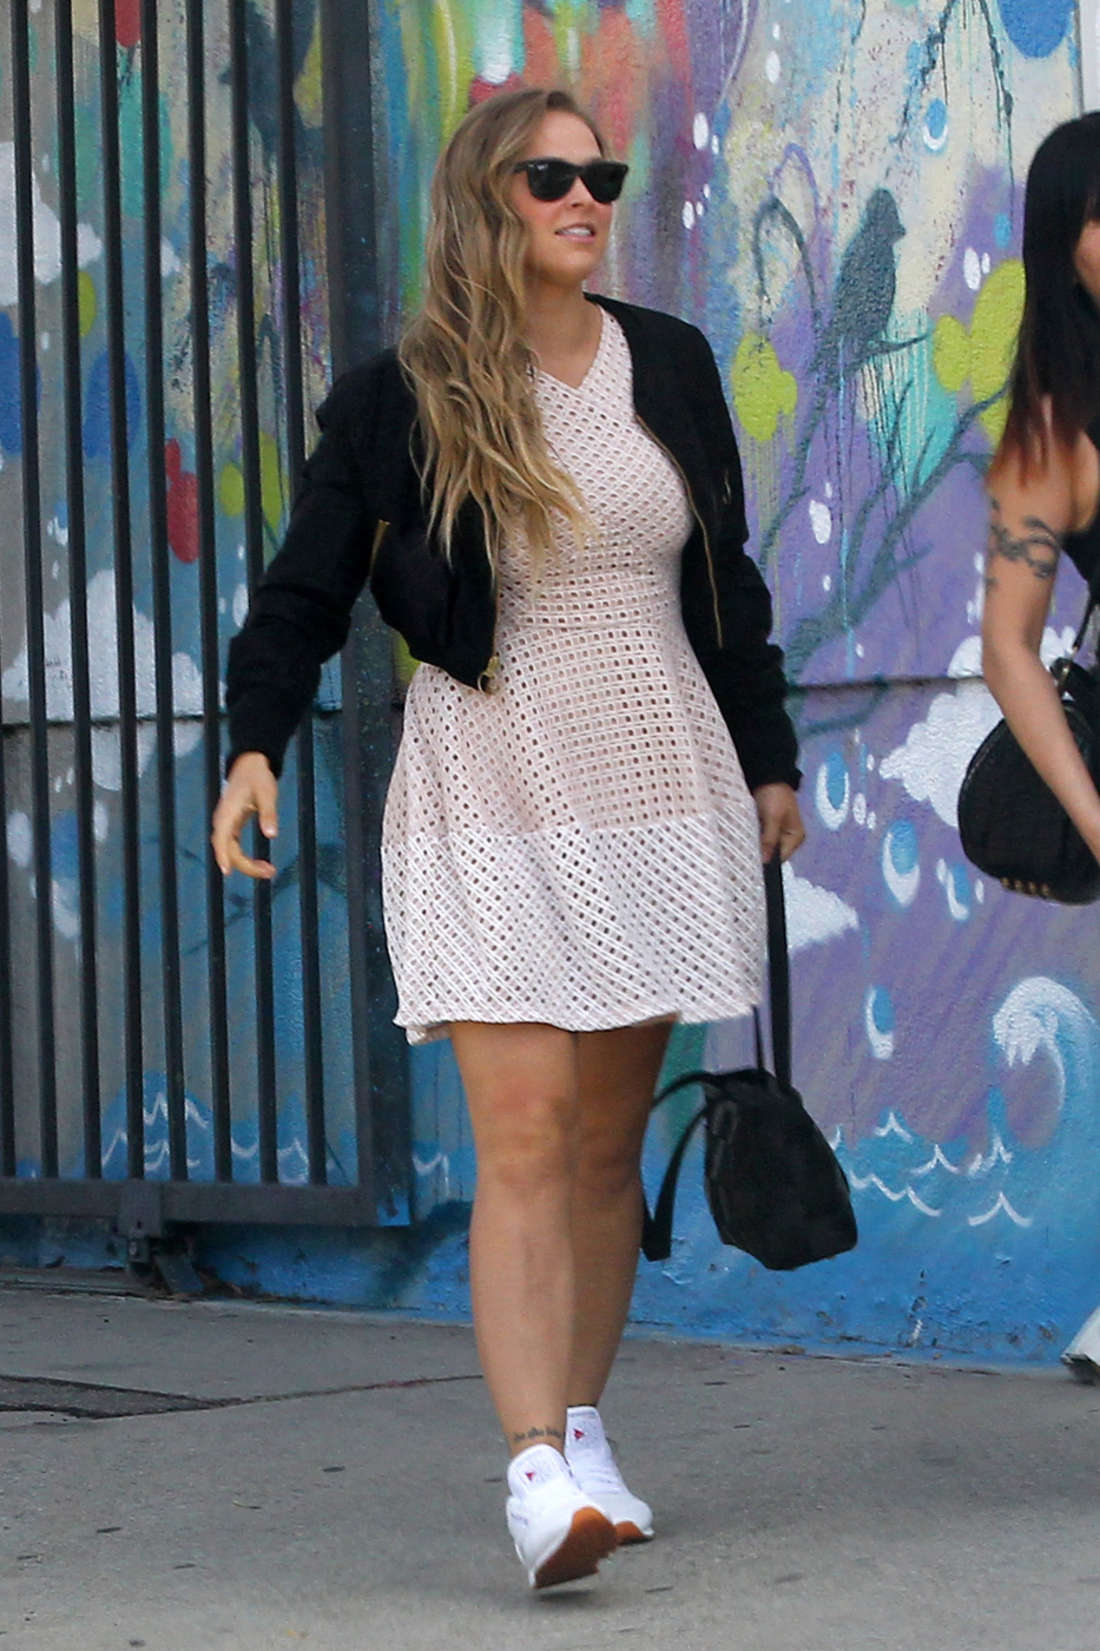 Ronda Rousey in Mini Dress out in Los Angeles